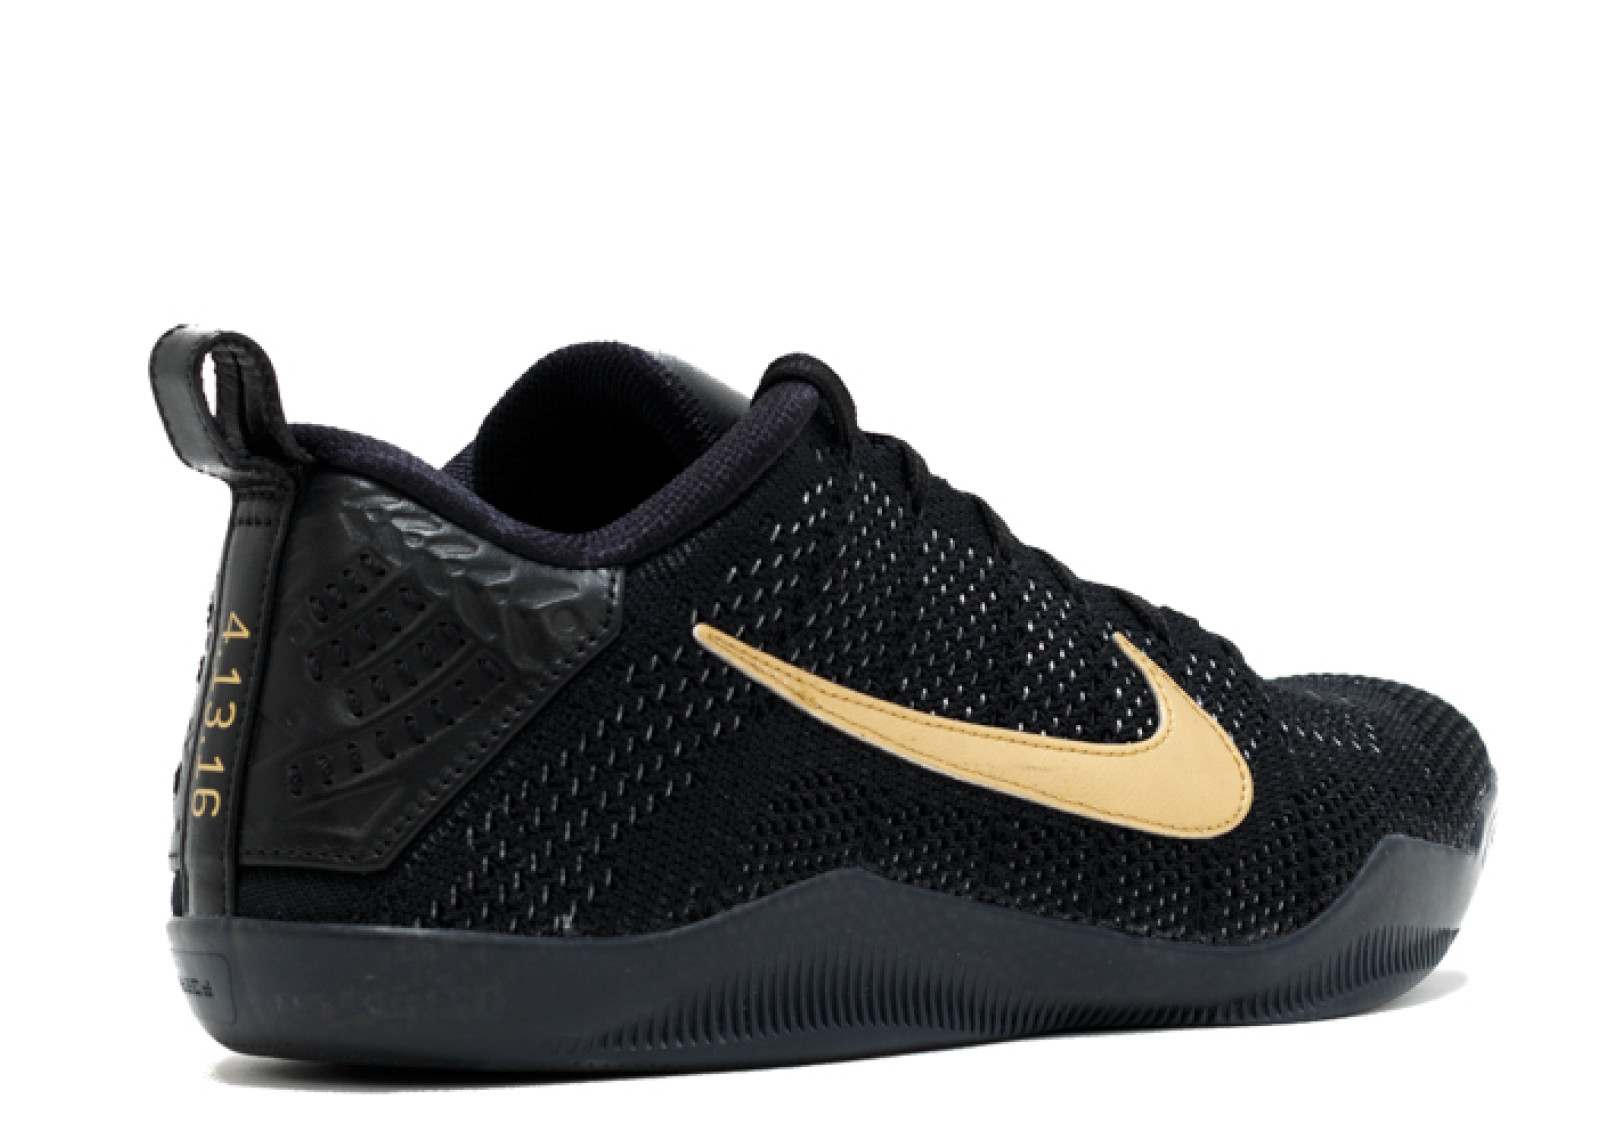 the latest ce56f b0531 Nike Kobe 11 Elite Low Black Mamba Collection Fade to Black - 3